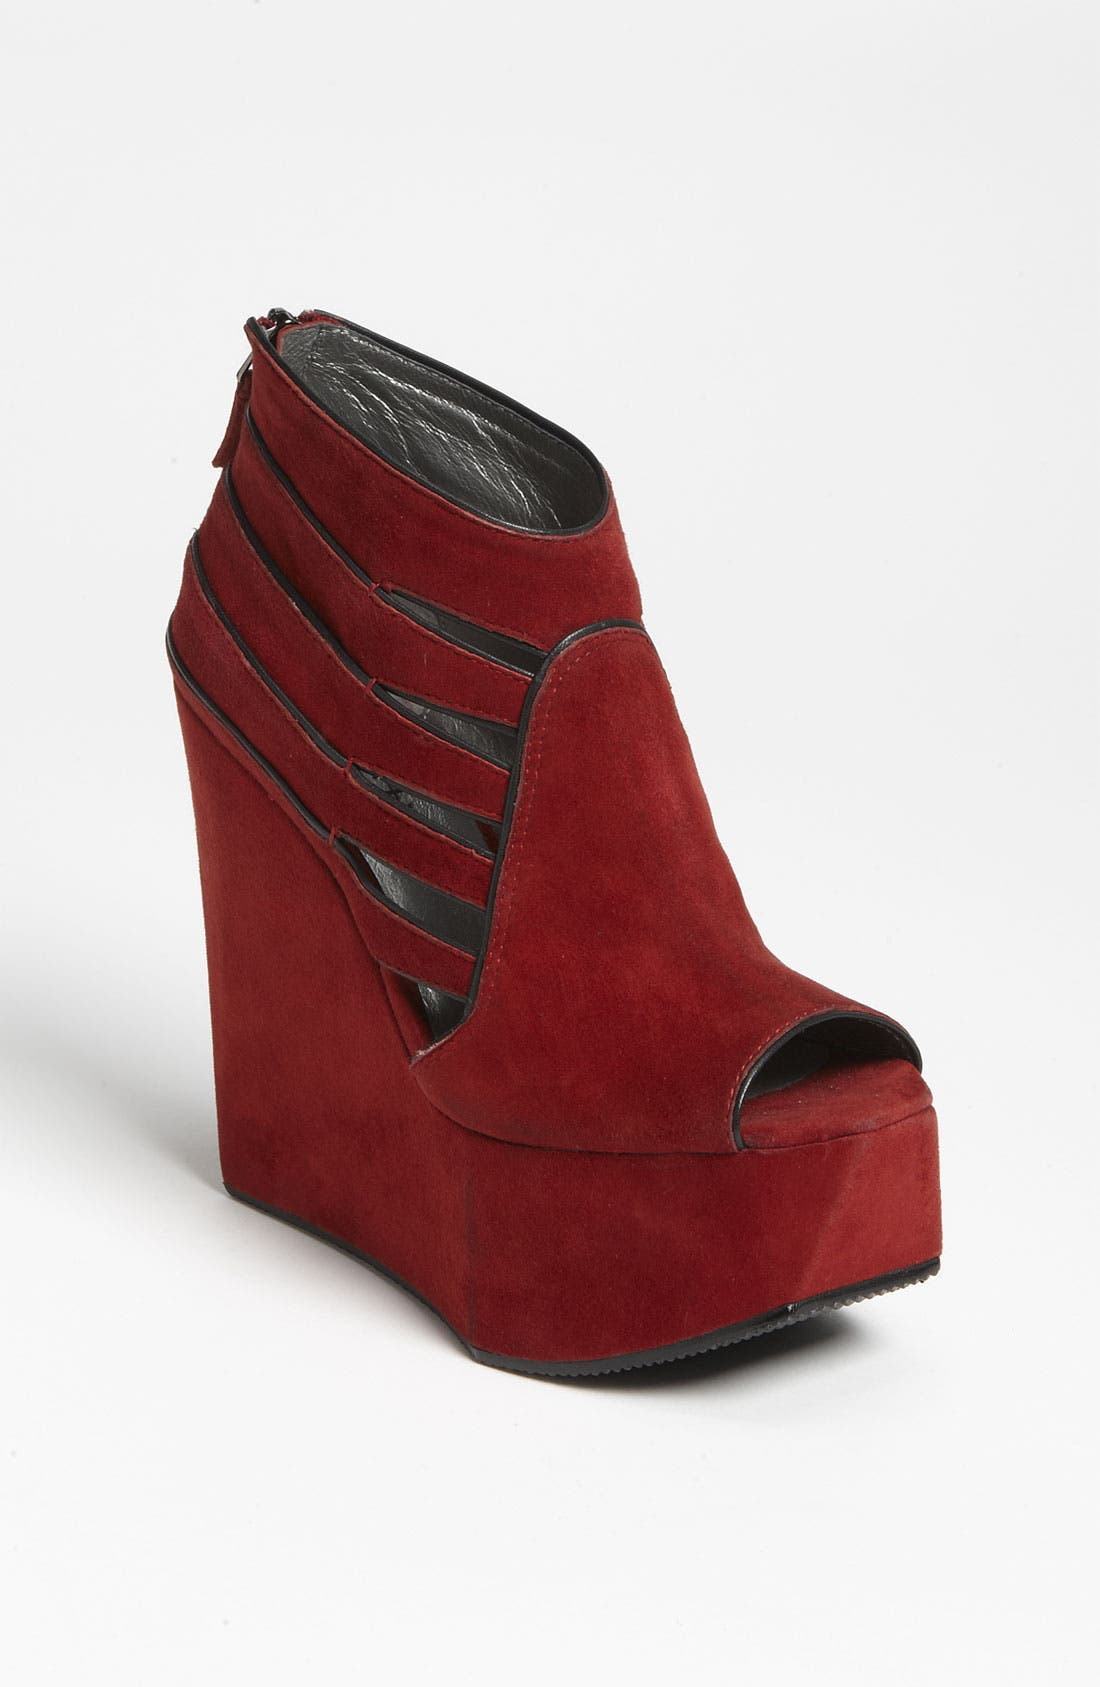 Alternate Image 1 Selected - Grey City 'Jett' Wedge Bootie